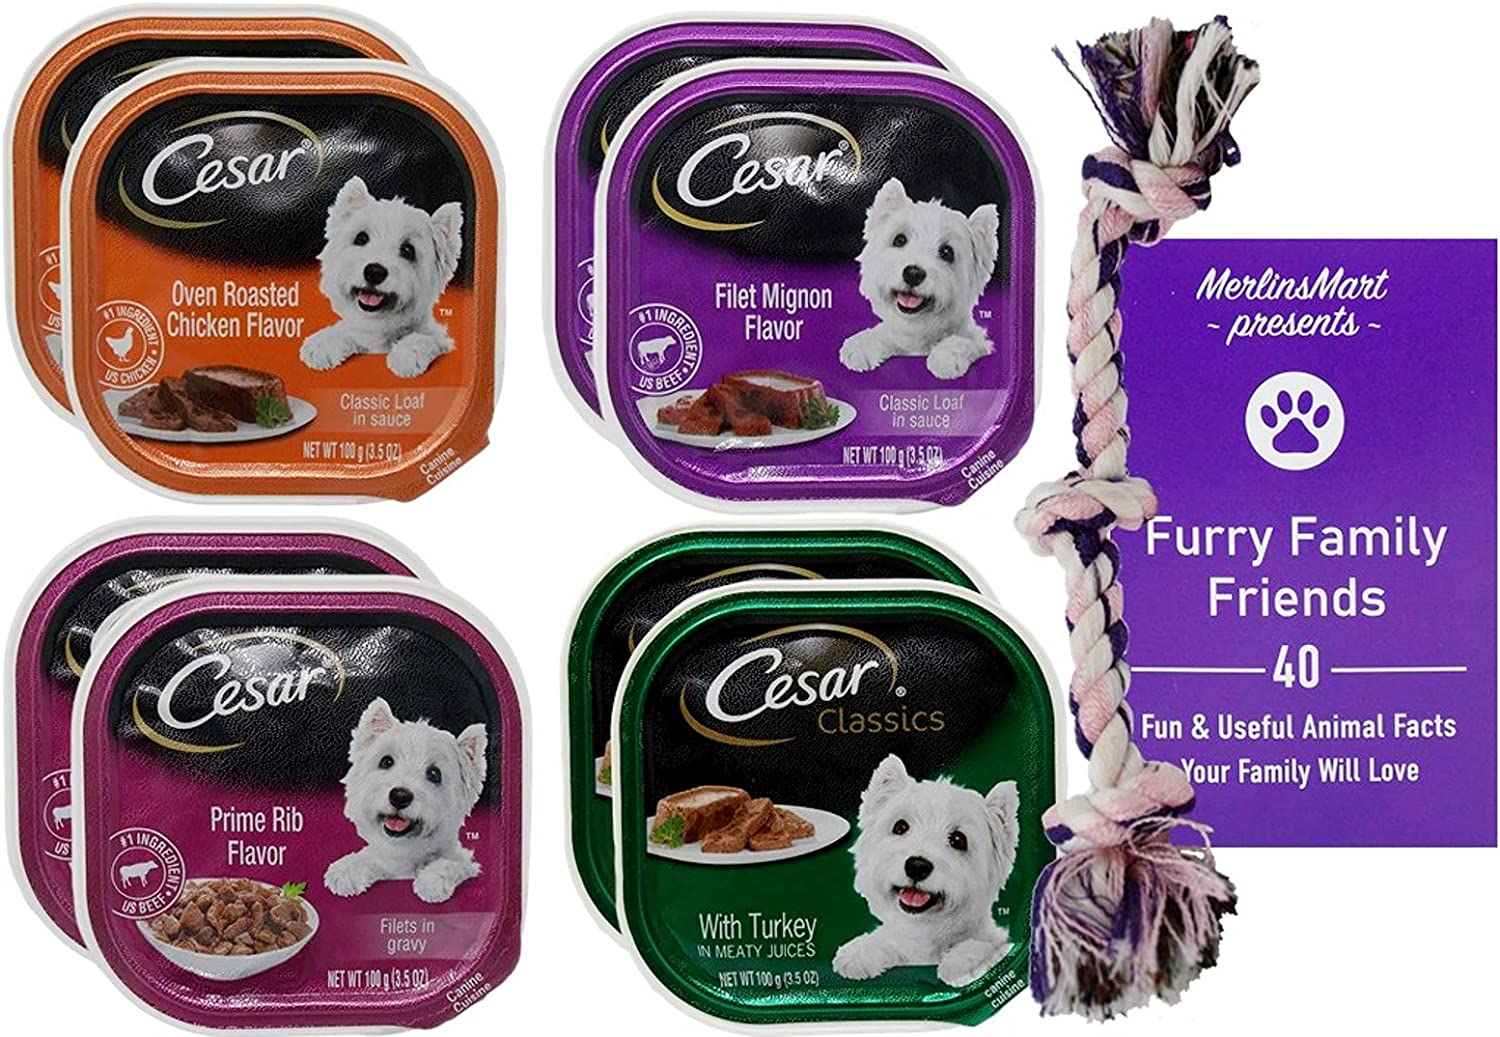 Cesar Dog Food 4 Flavor 8 Can Variety (2) Each: Oven Roasted Chicken, Filet Mignon, Prime Rib, Turkey (3.5 Ounces) - Plus Rope Toy and Fun Facts Booklet Bundle